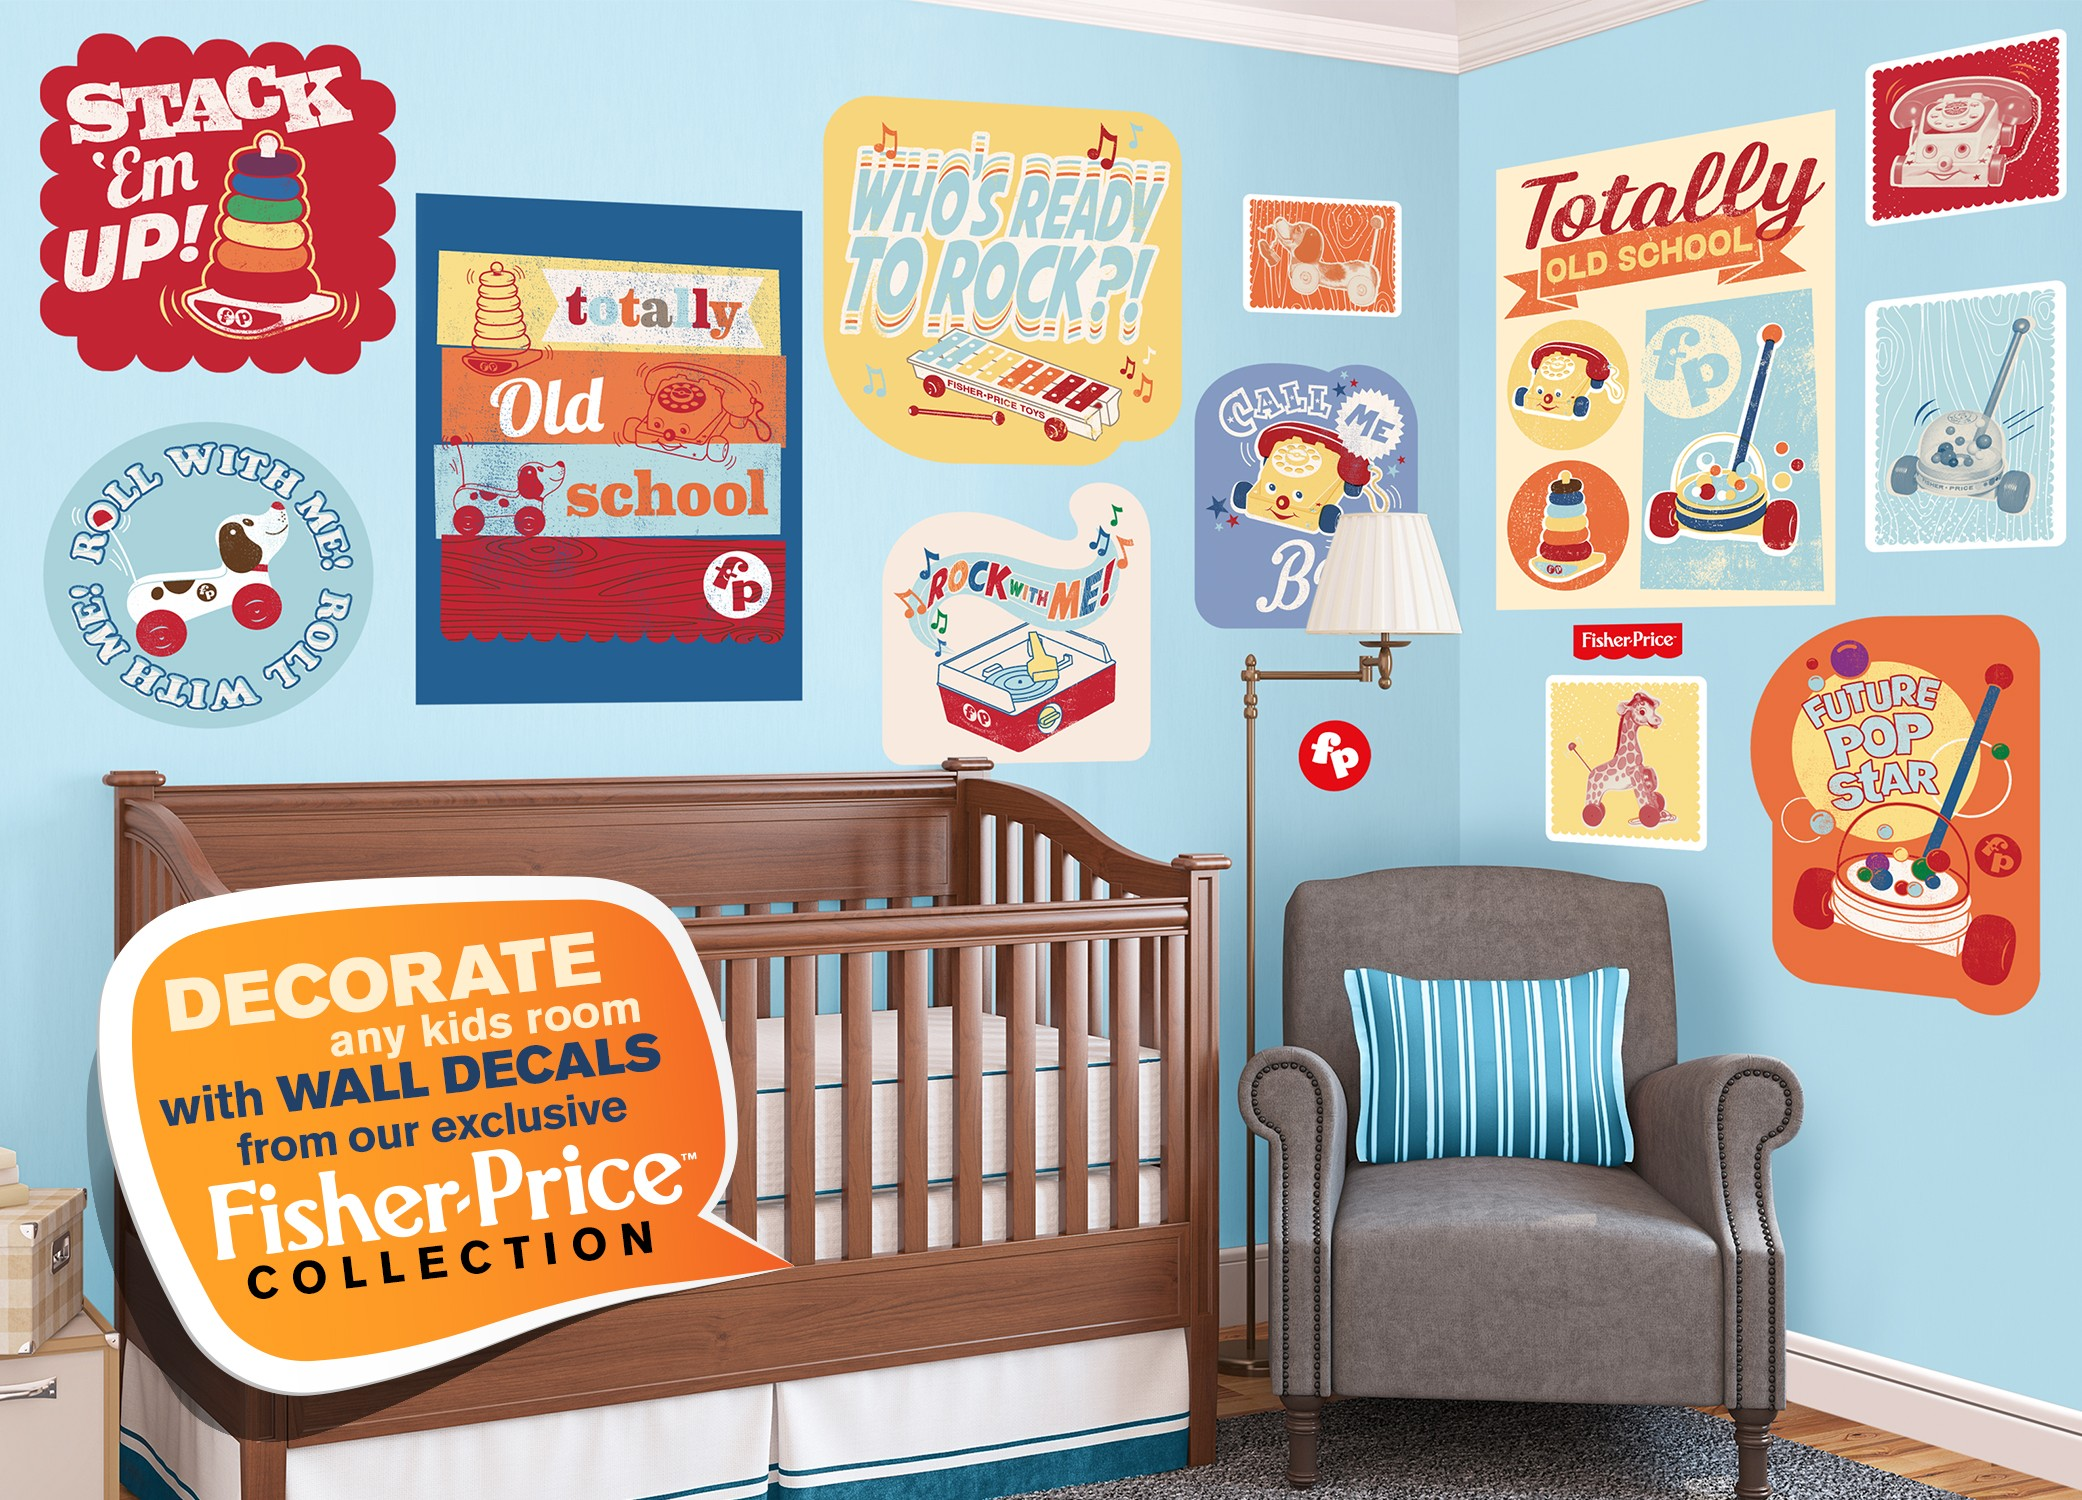 Fisher Price Wall Decals